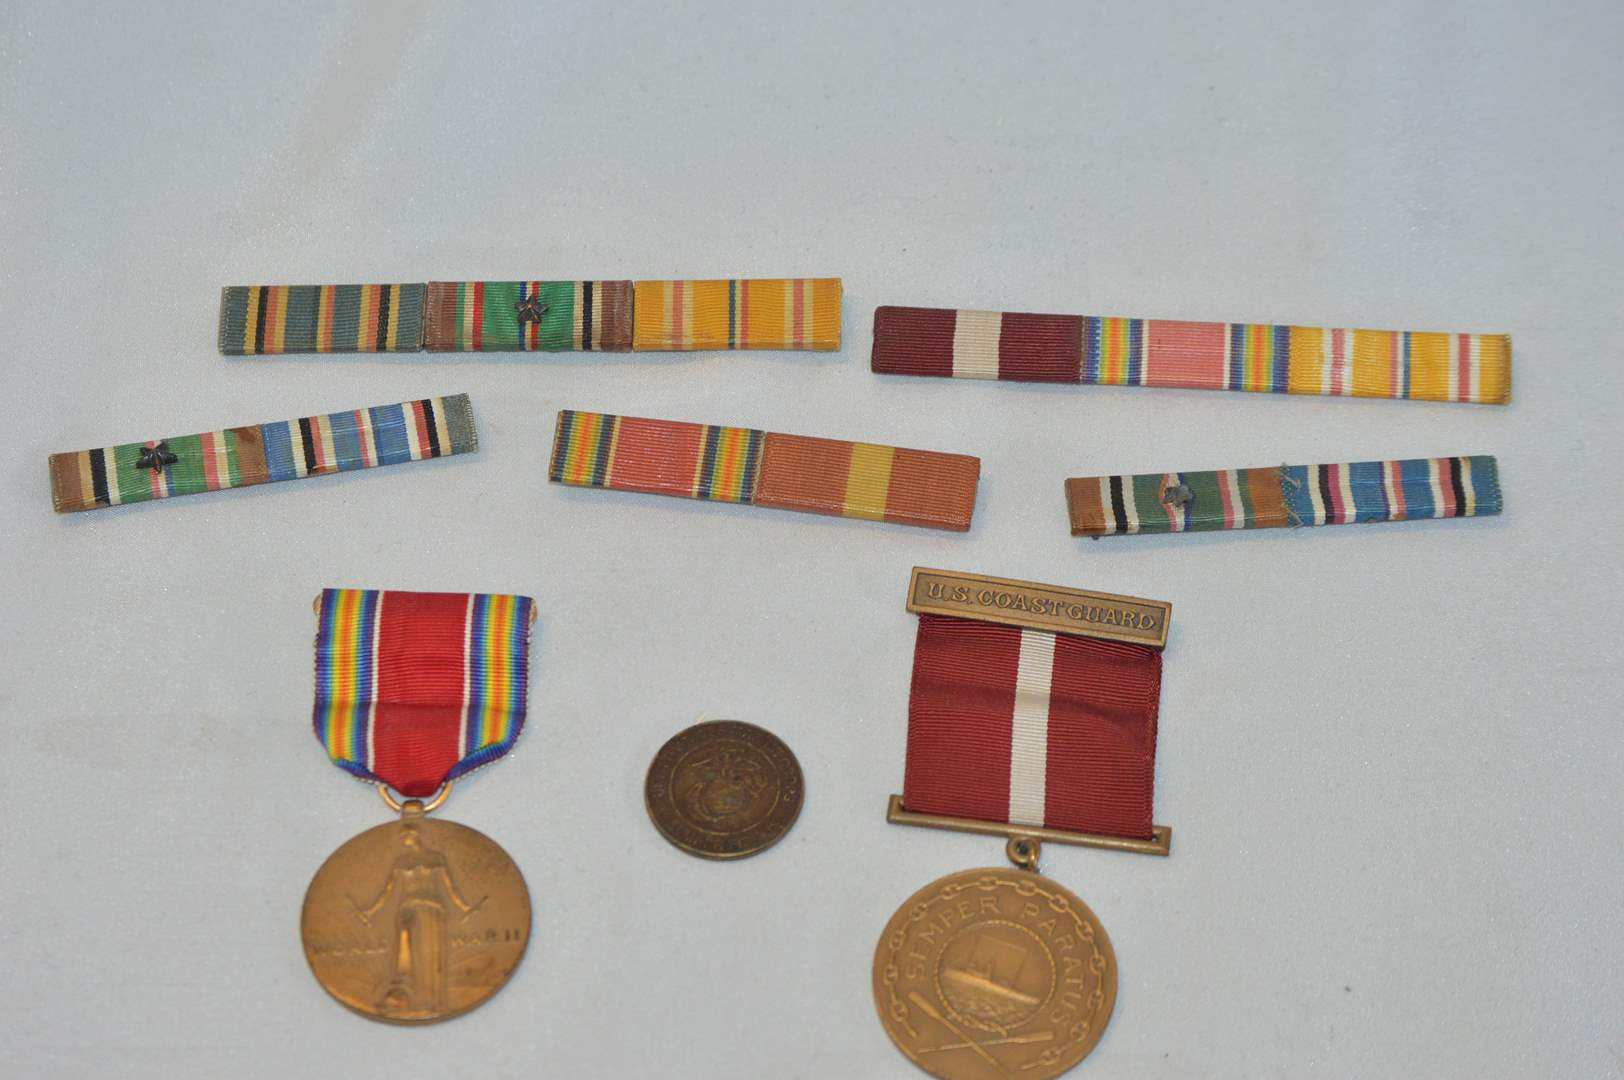 Lot # 59 Vintage military service medals, ribbons, & coin (main image)